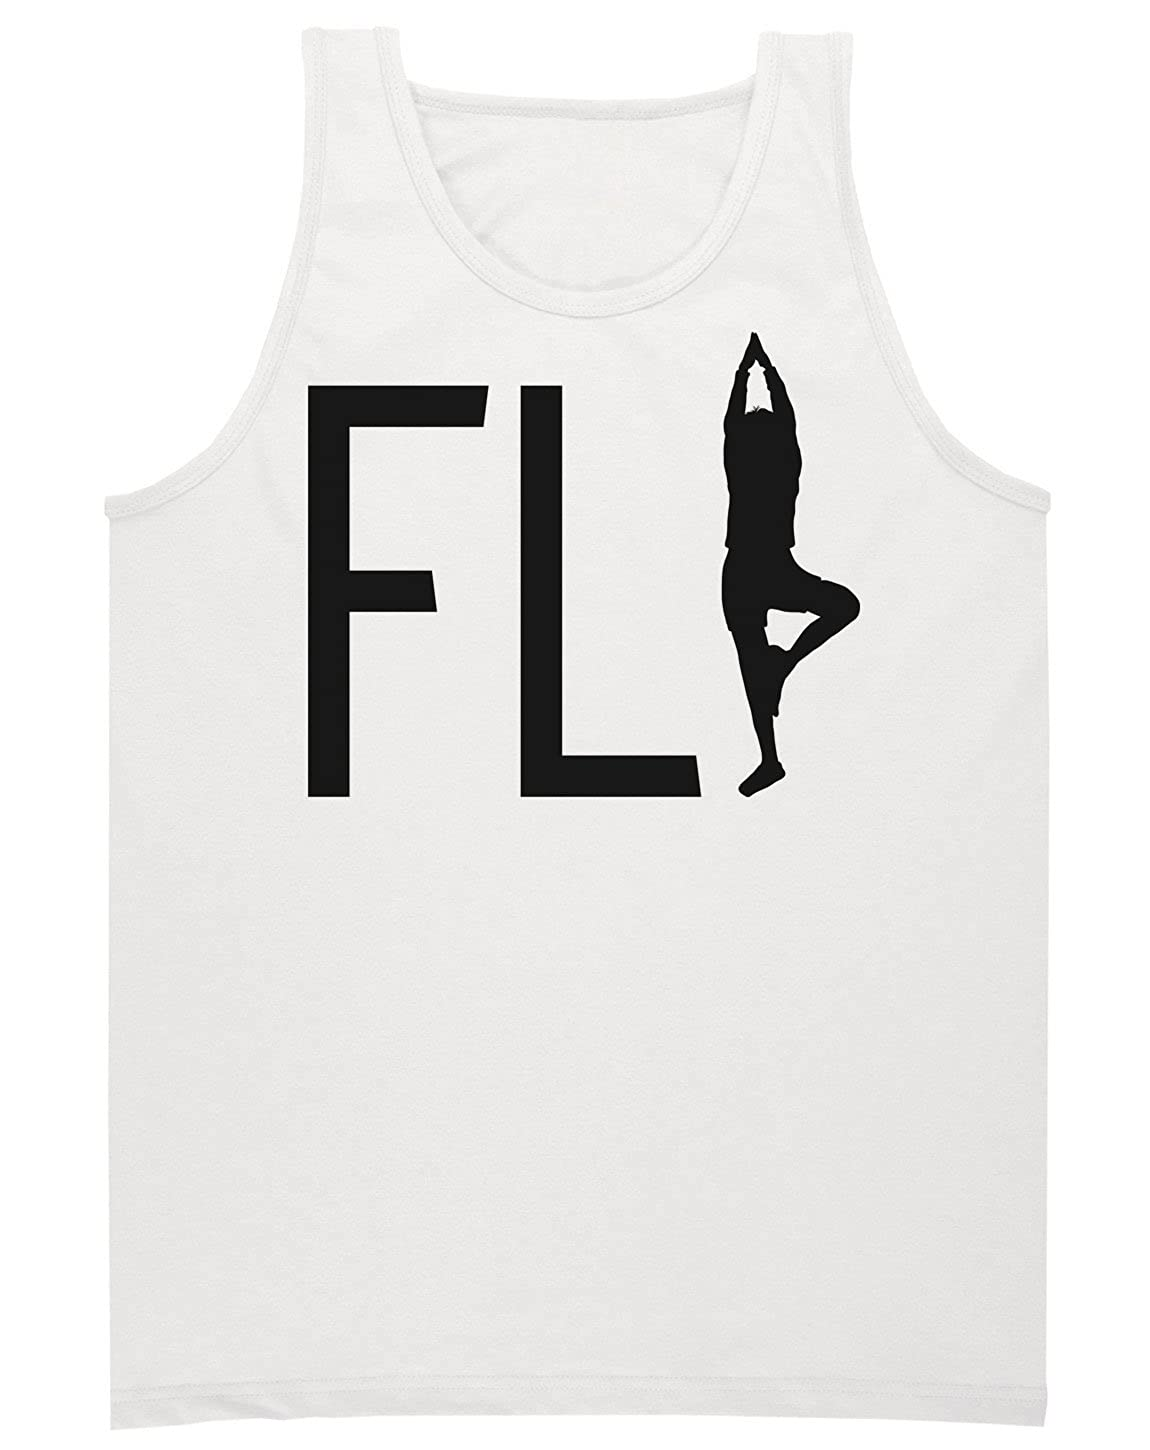 Amazon.com: Finest Prints Fly Yoga Human Silhouette Mens ...